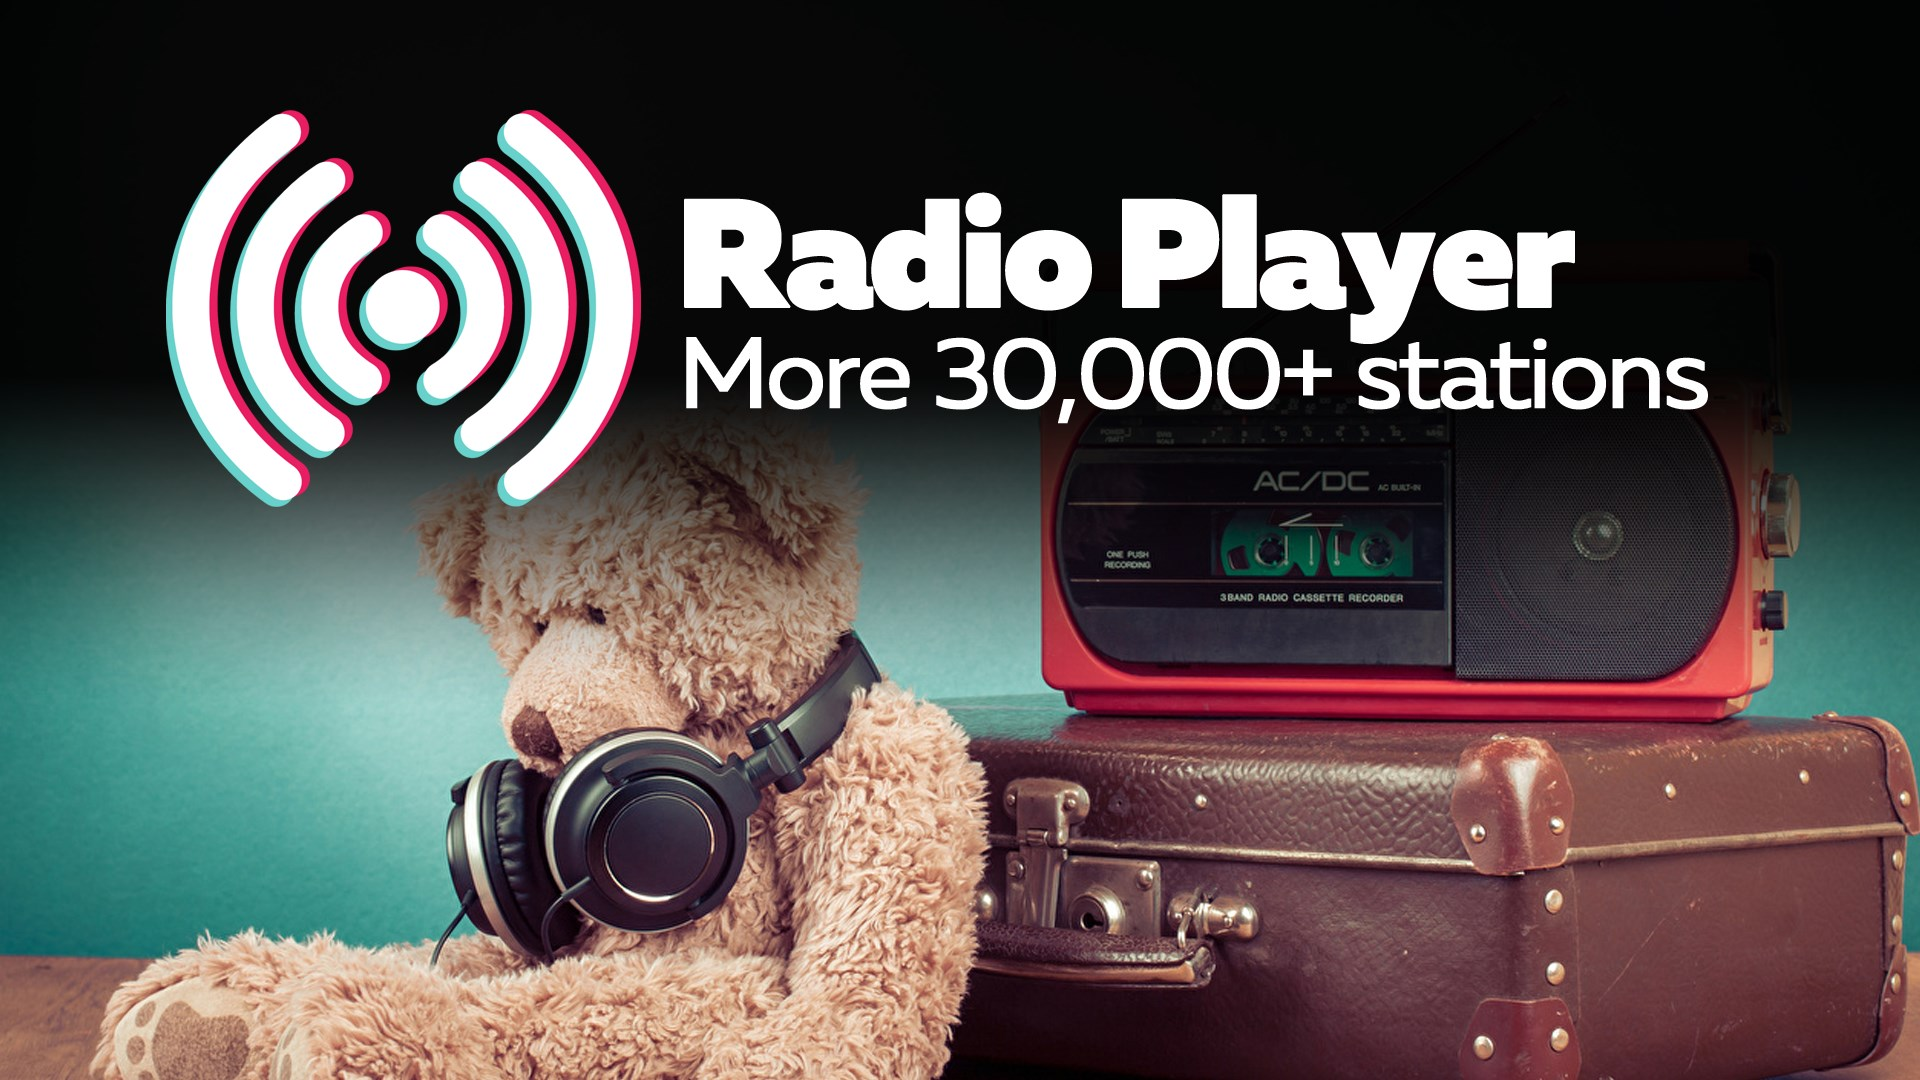 Get Good Radio FM - Listen Live to Online Radio, Music and